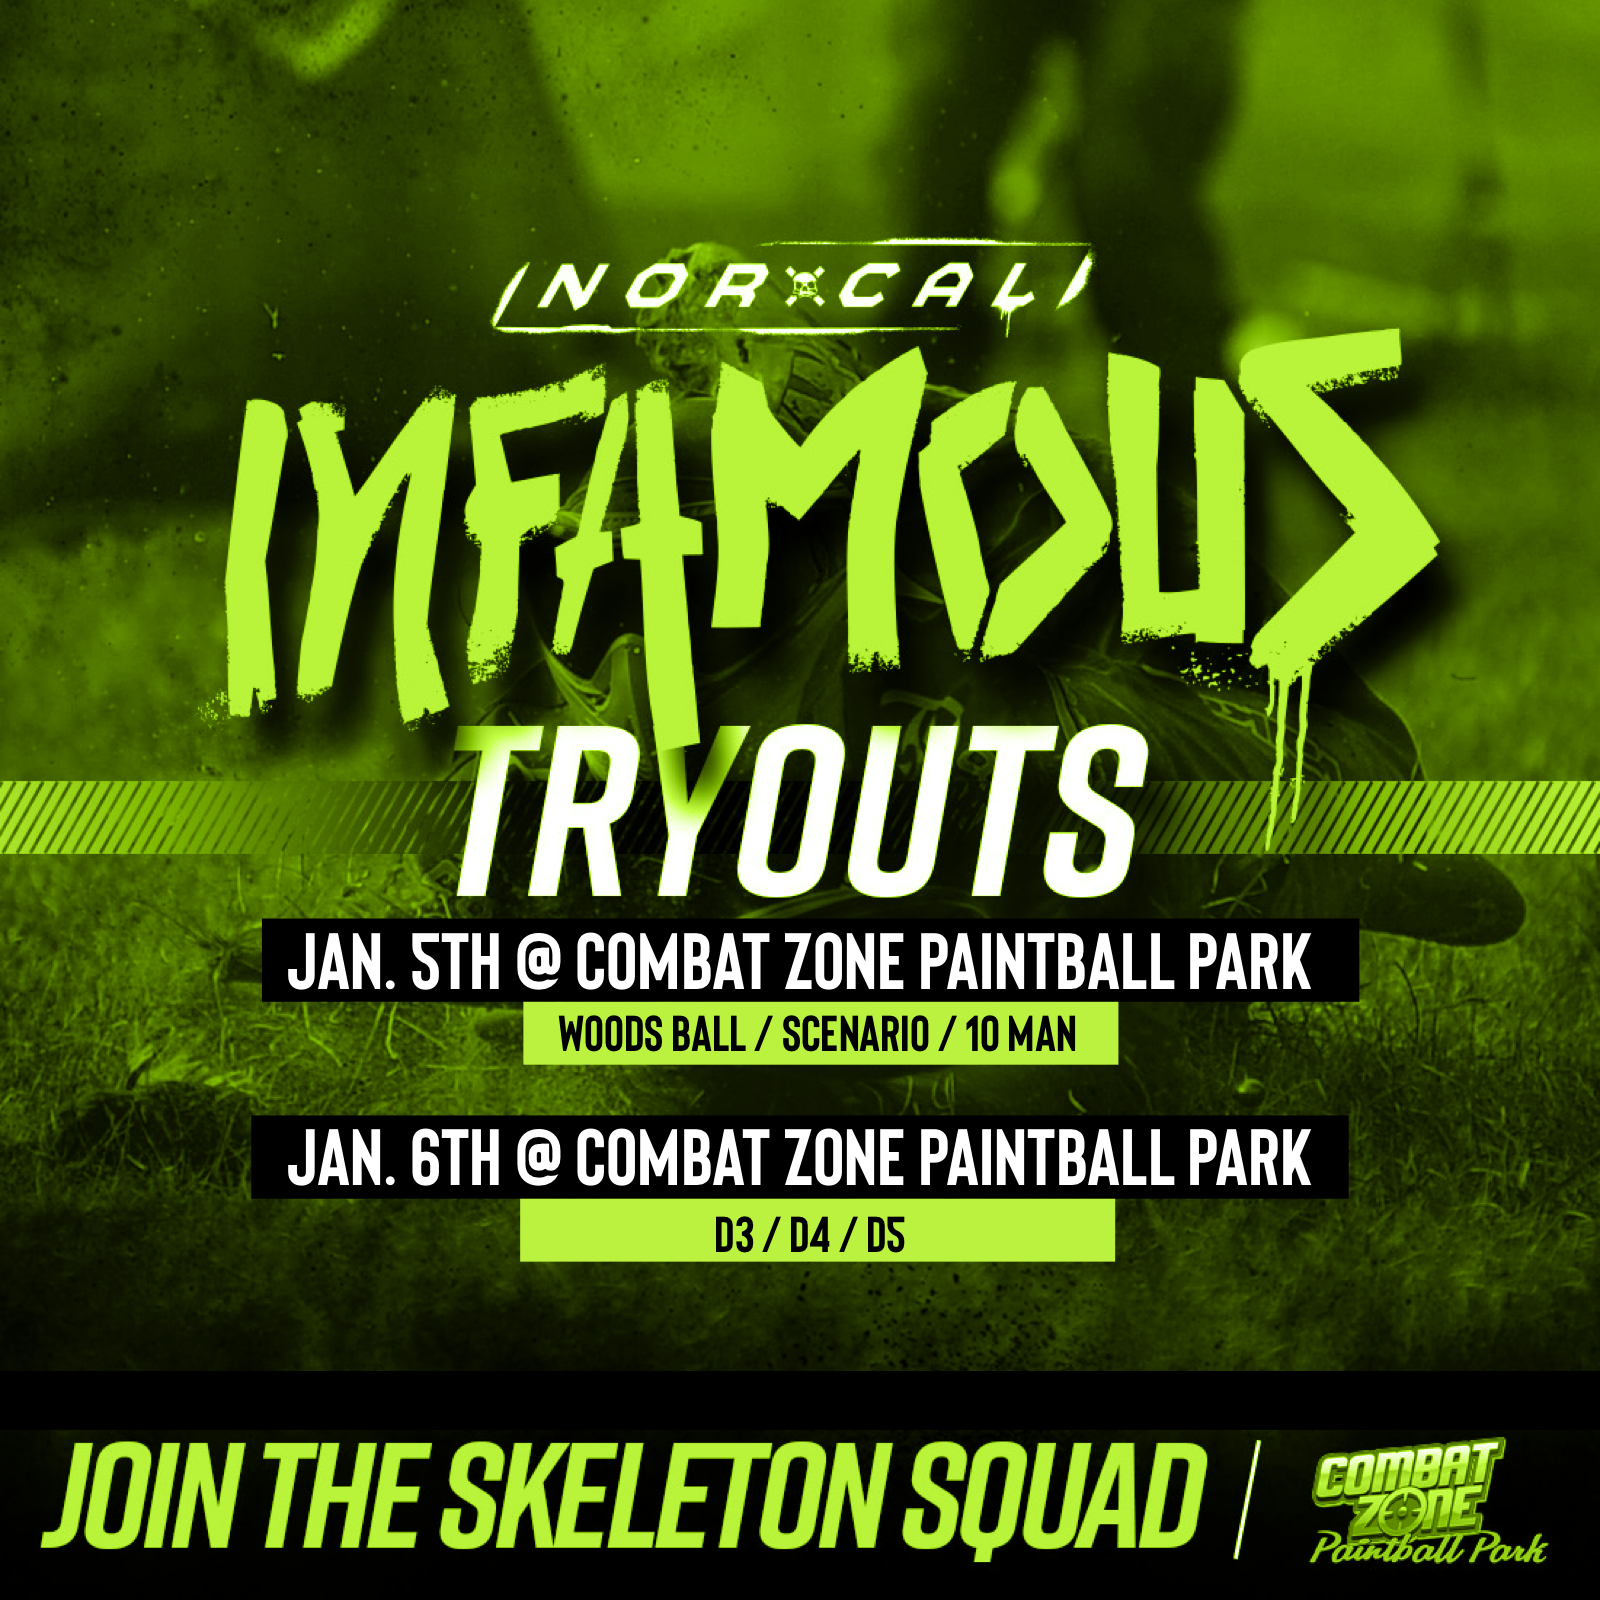 NOR-CAL Infamous Tryouts